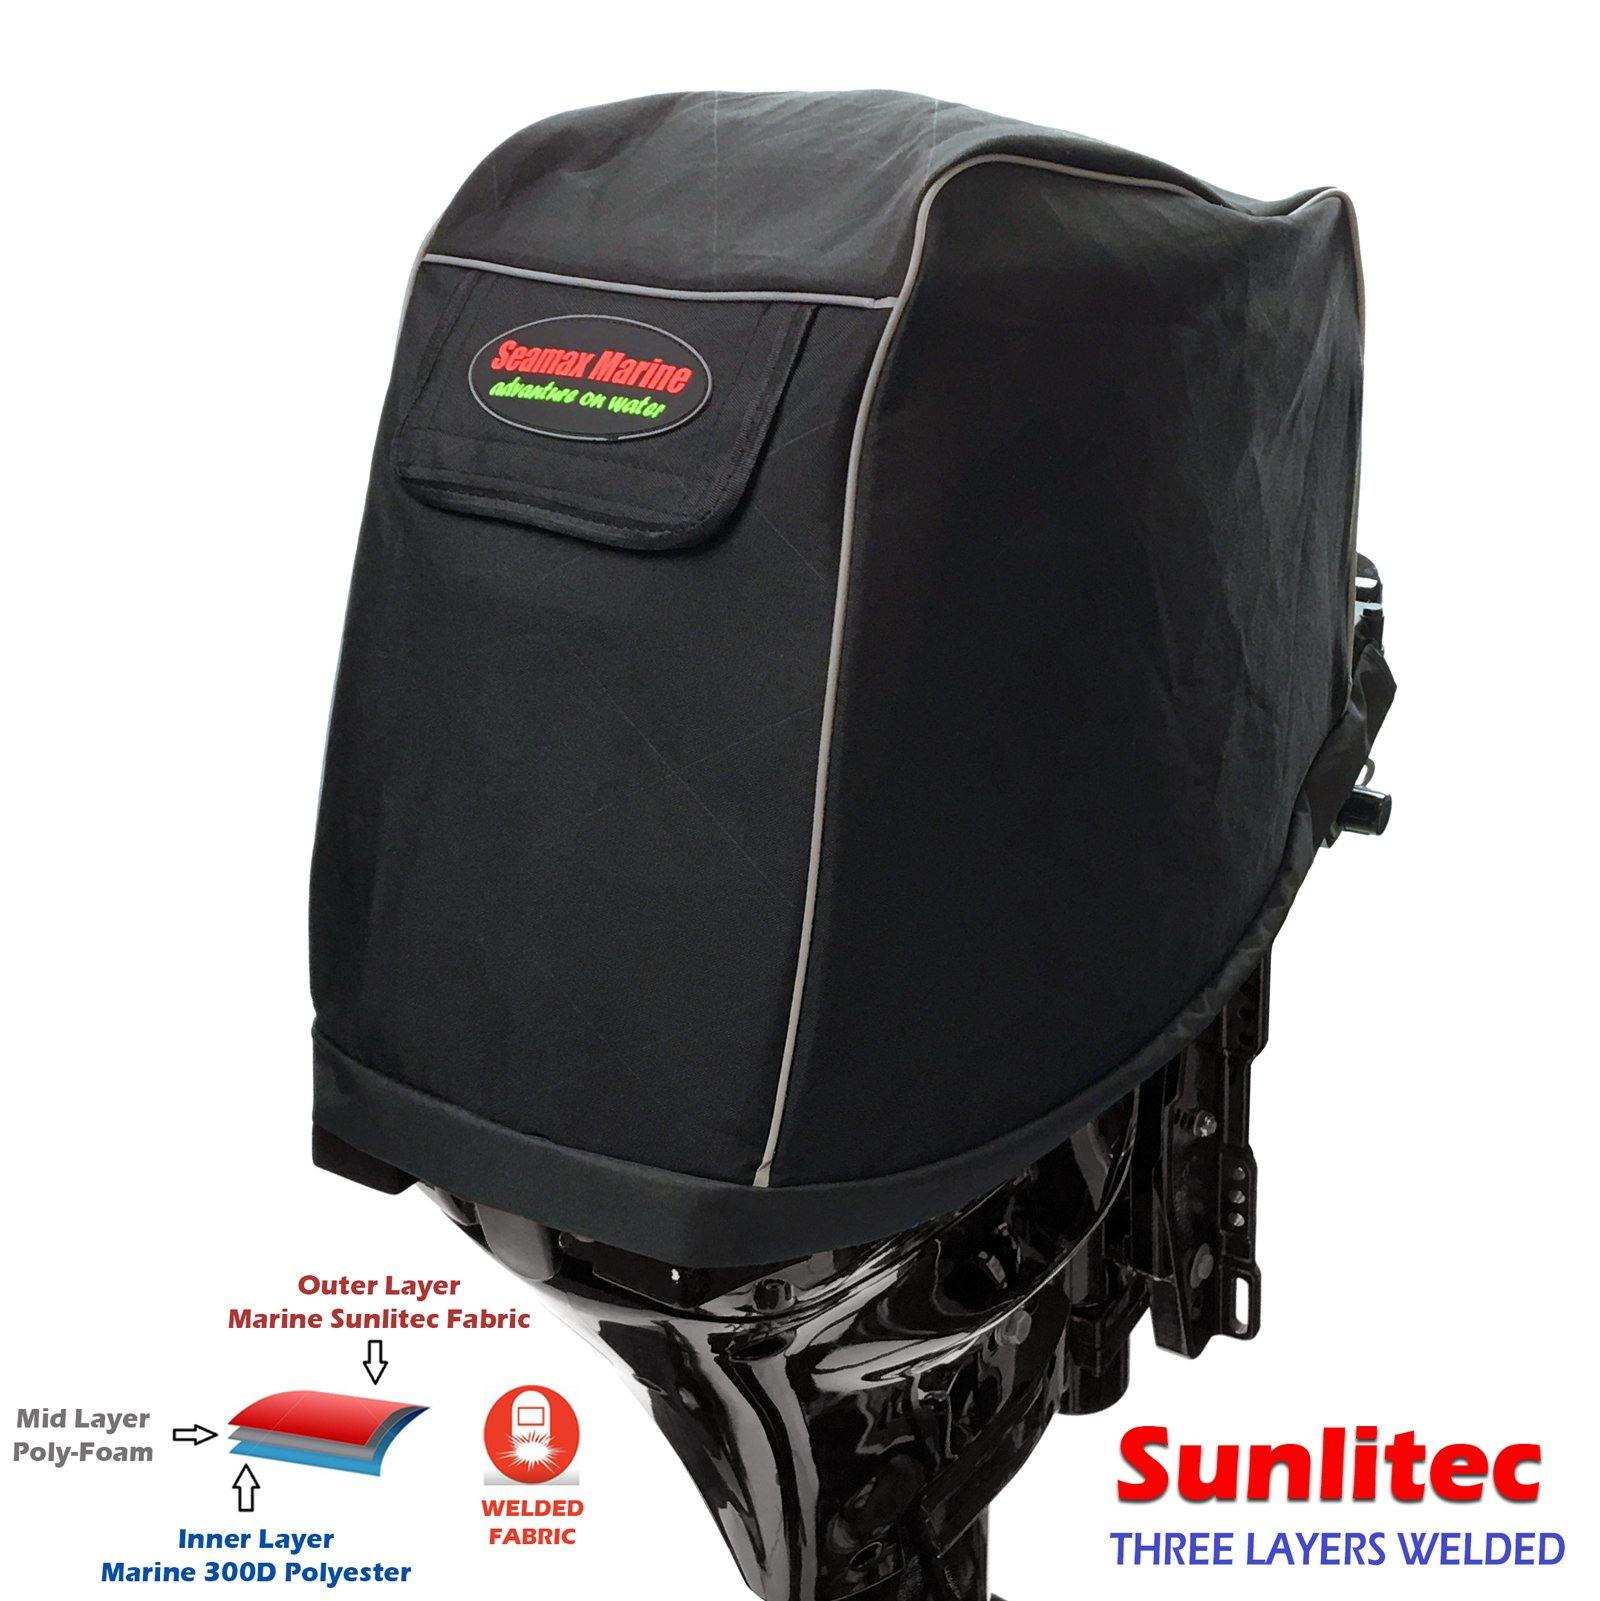 Universal Outboard Motor Cowling Cover with 3-Layers Welded Sunlitec Fabric  and Reflective Edges